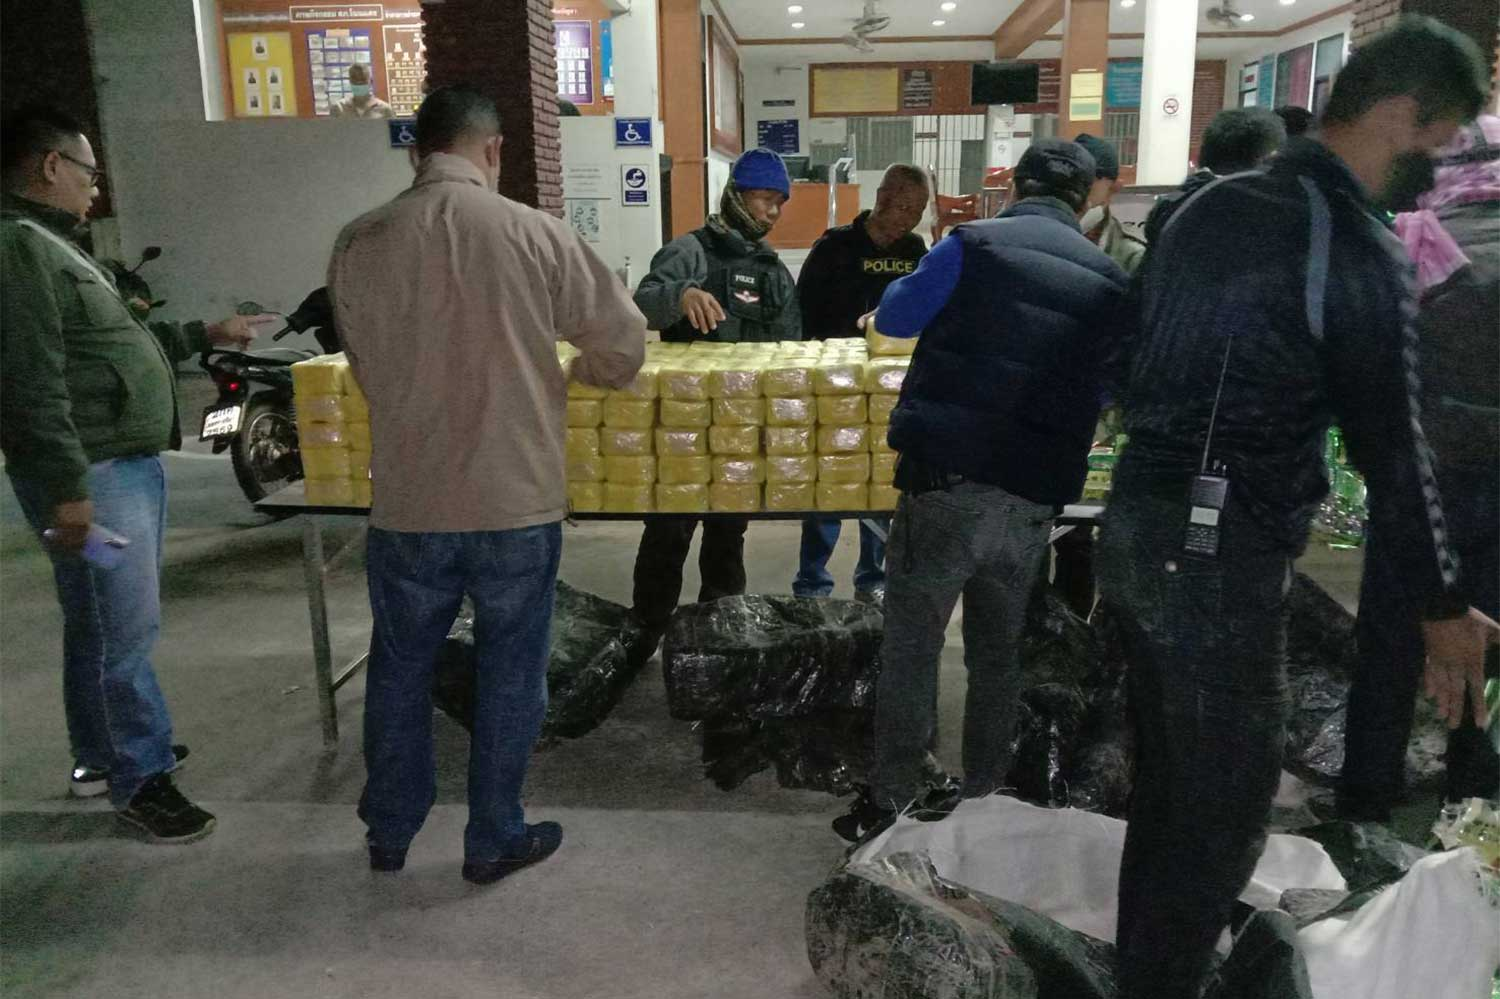 Police display packages containing 2 million speed pills and 400kg of crystal methamphetamine, seized after a shootout with two men in a pickup in Non Daeng district, Nakhon Ratchasima province, in the early hours of Thursday. One suspect was wounded.  (Photo: Prasit Tangprasert)